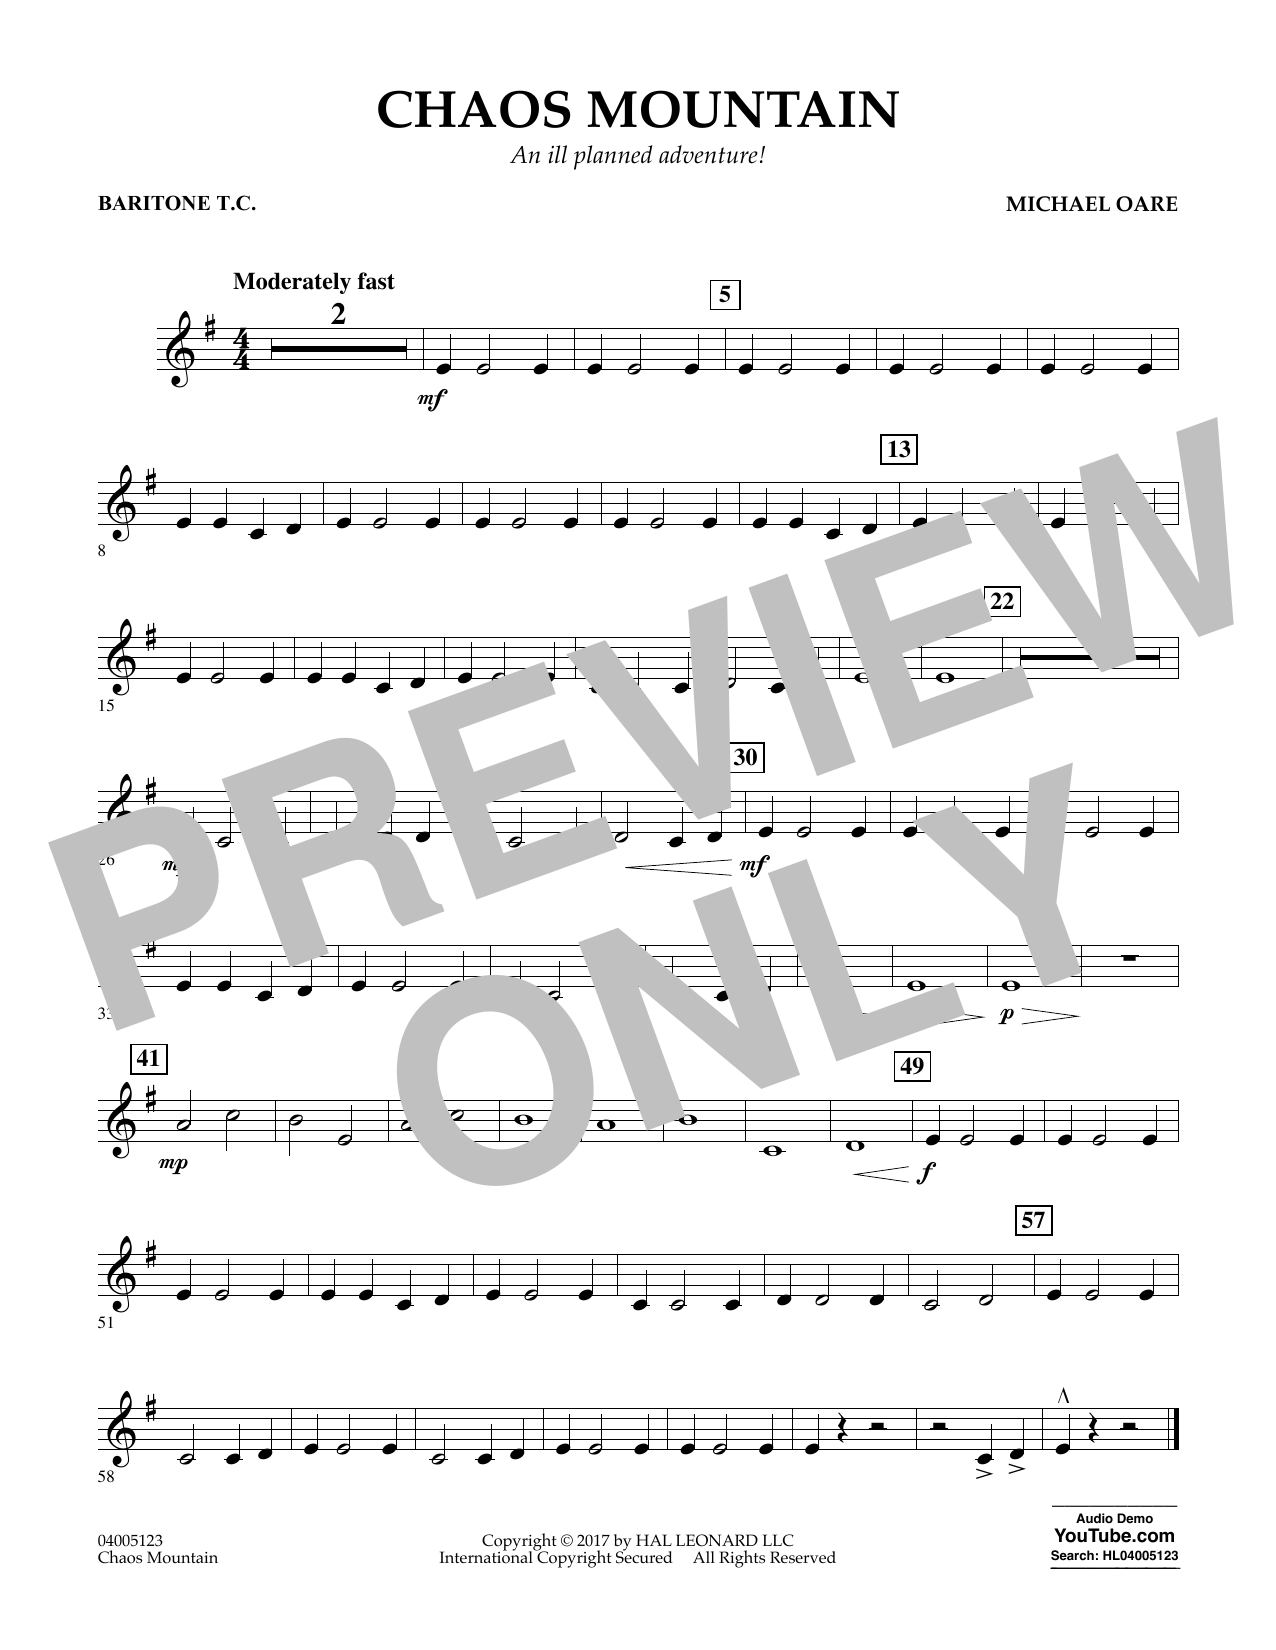 Michael Oare Chaos Mountain - Baritone T.C. sheet music notes and chords. Download Printable PDF.